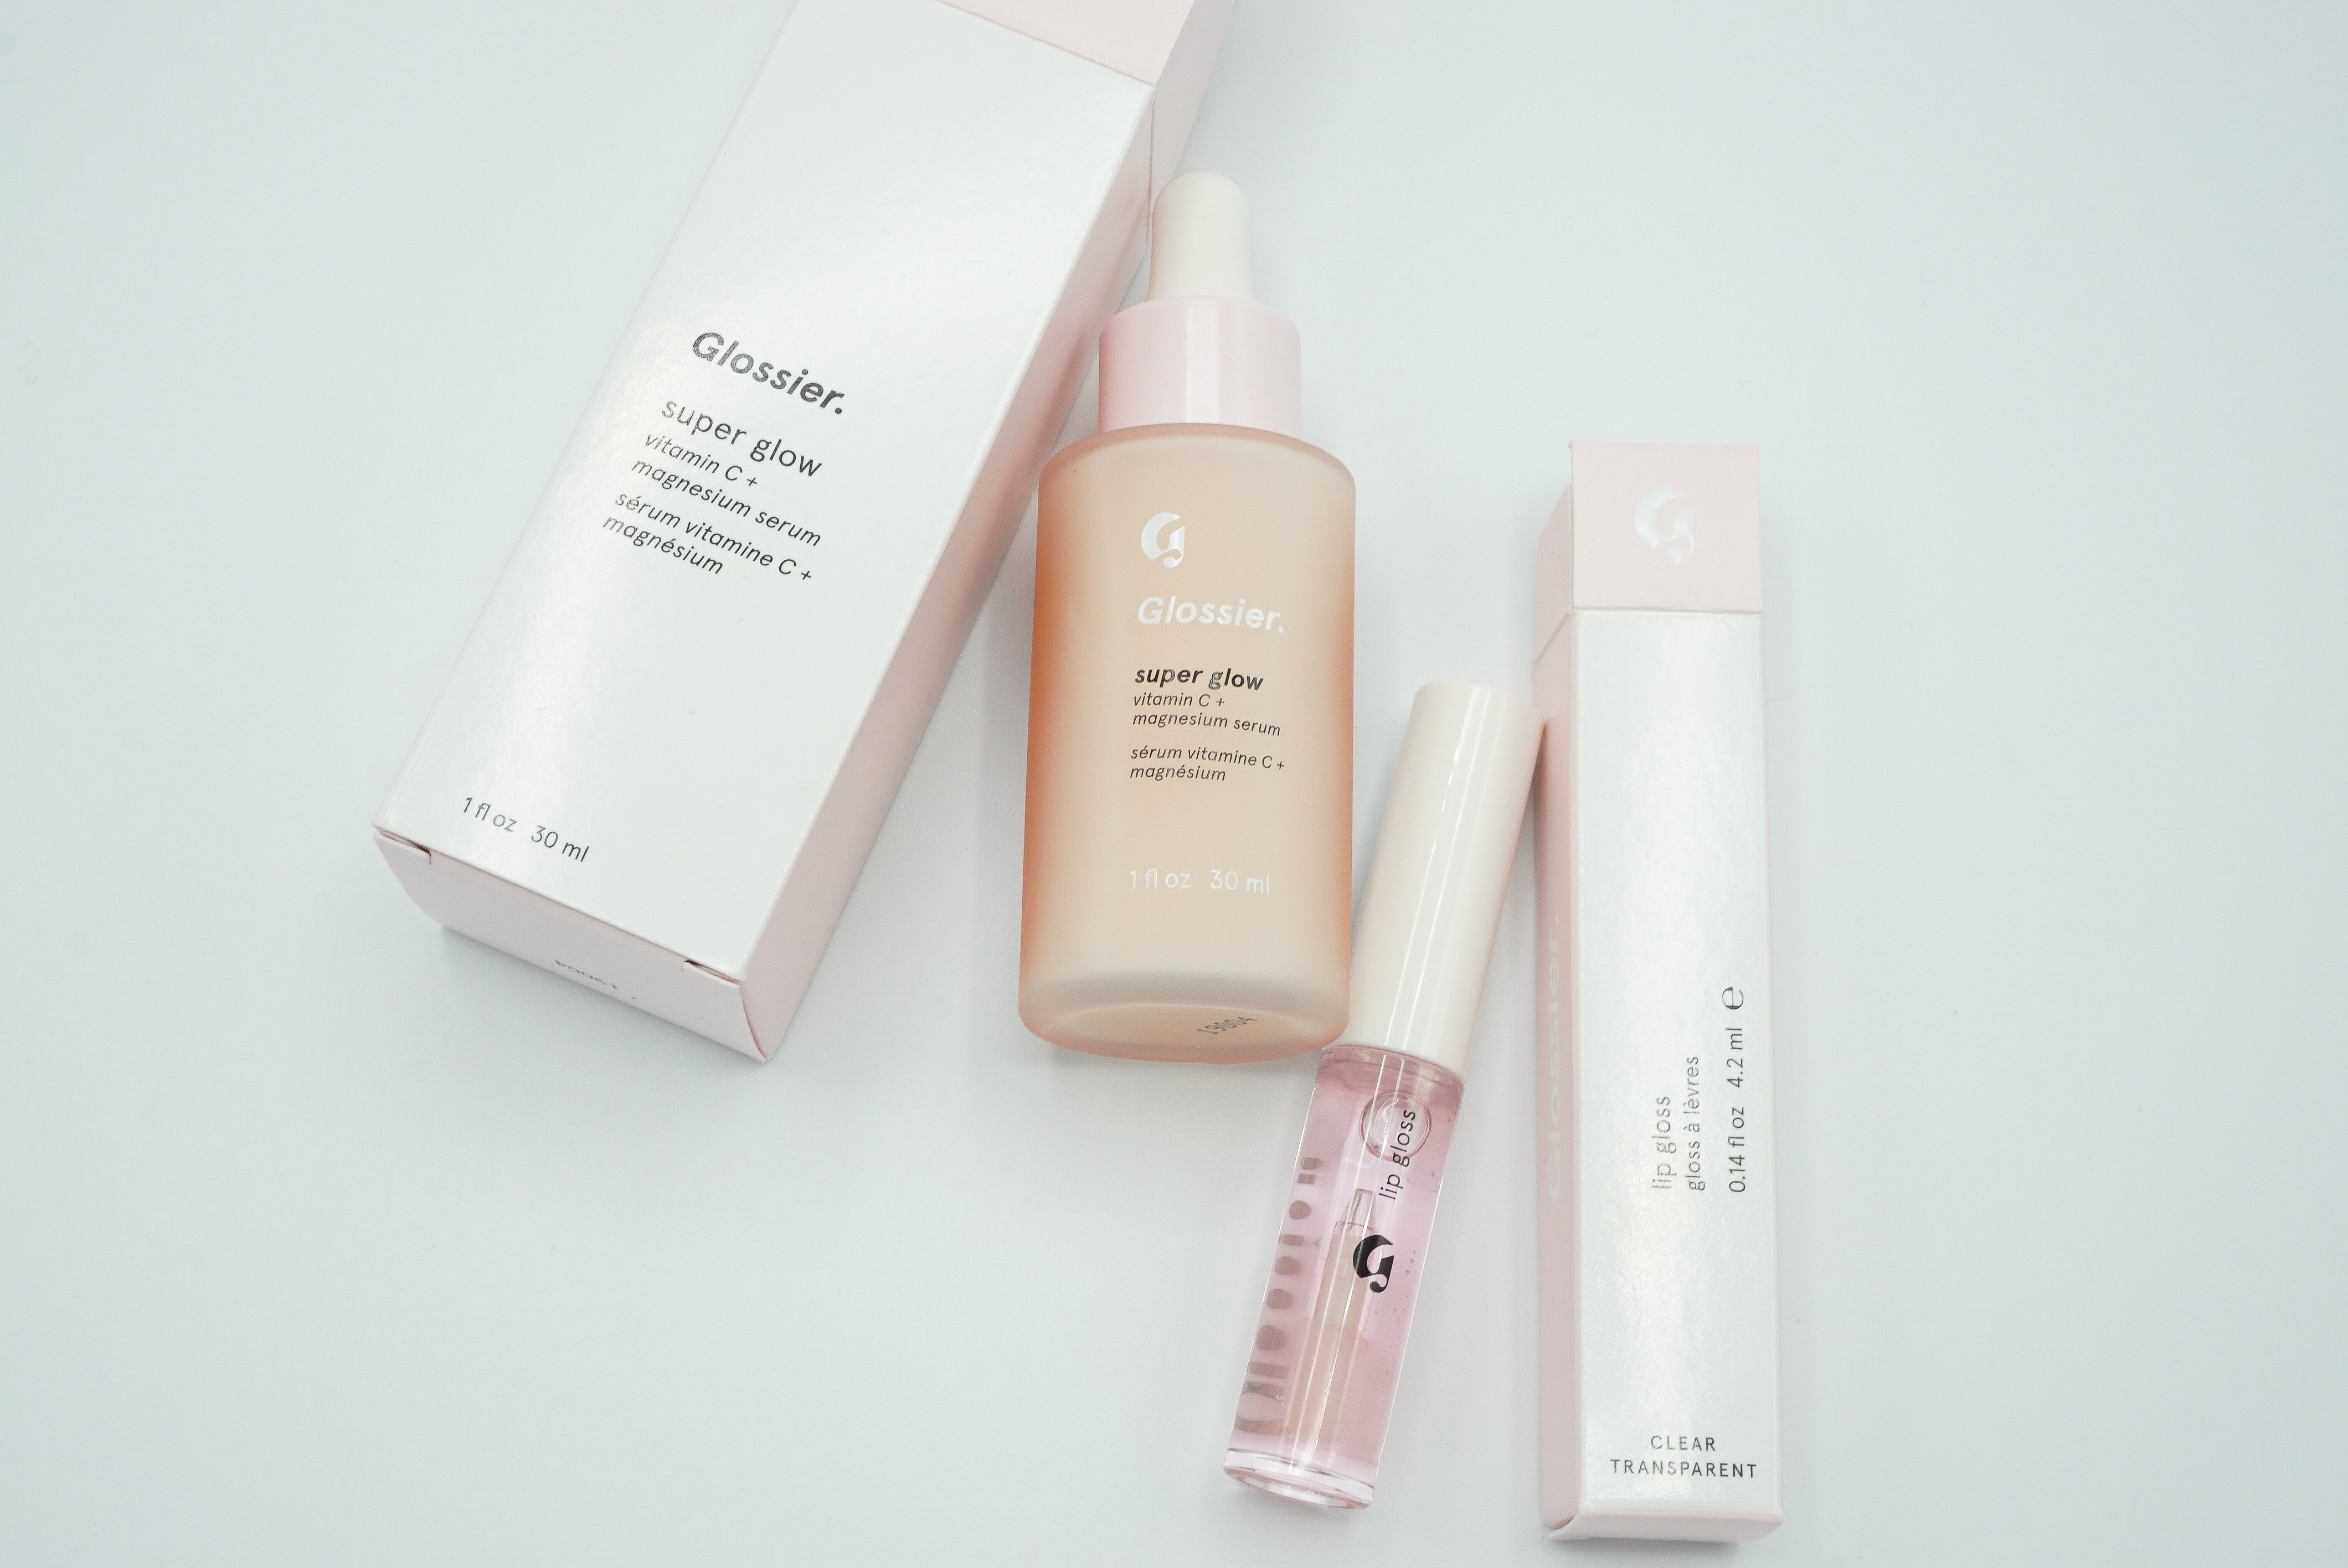 Glossier Products | Glossier Super Glow Vitamin C + Magnesium Serum and Glossier Lipgloss in Clear